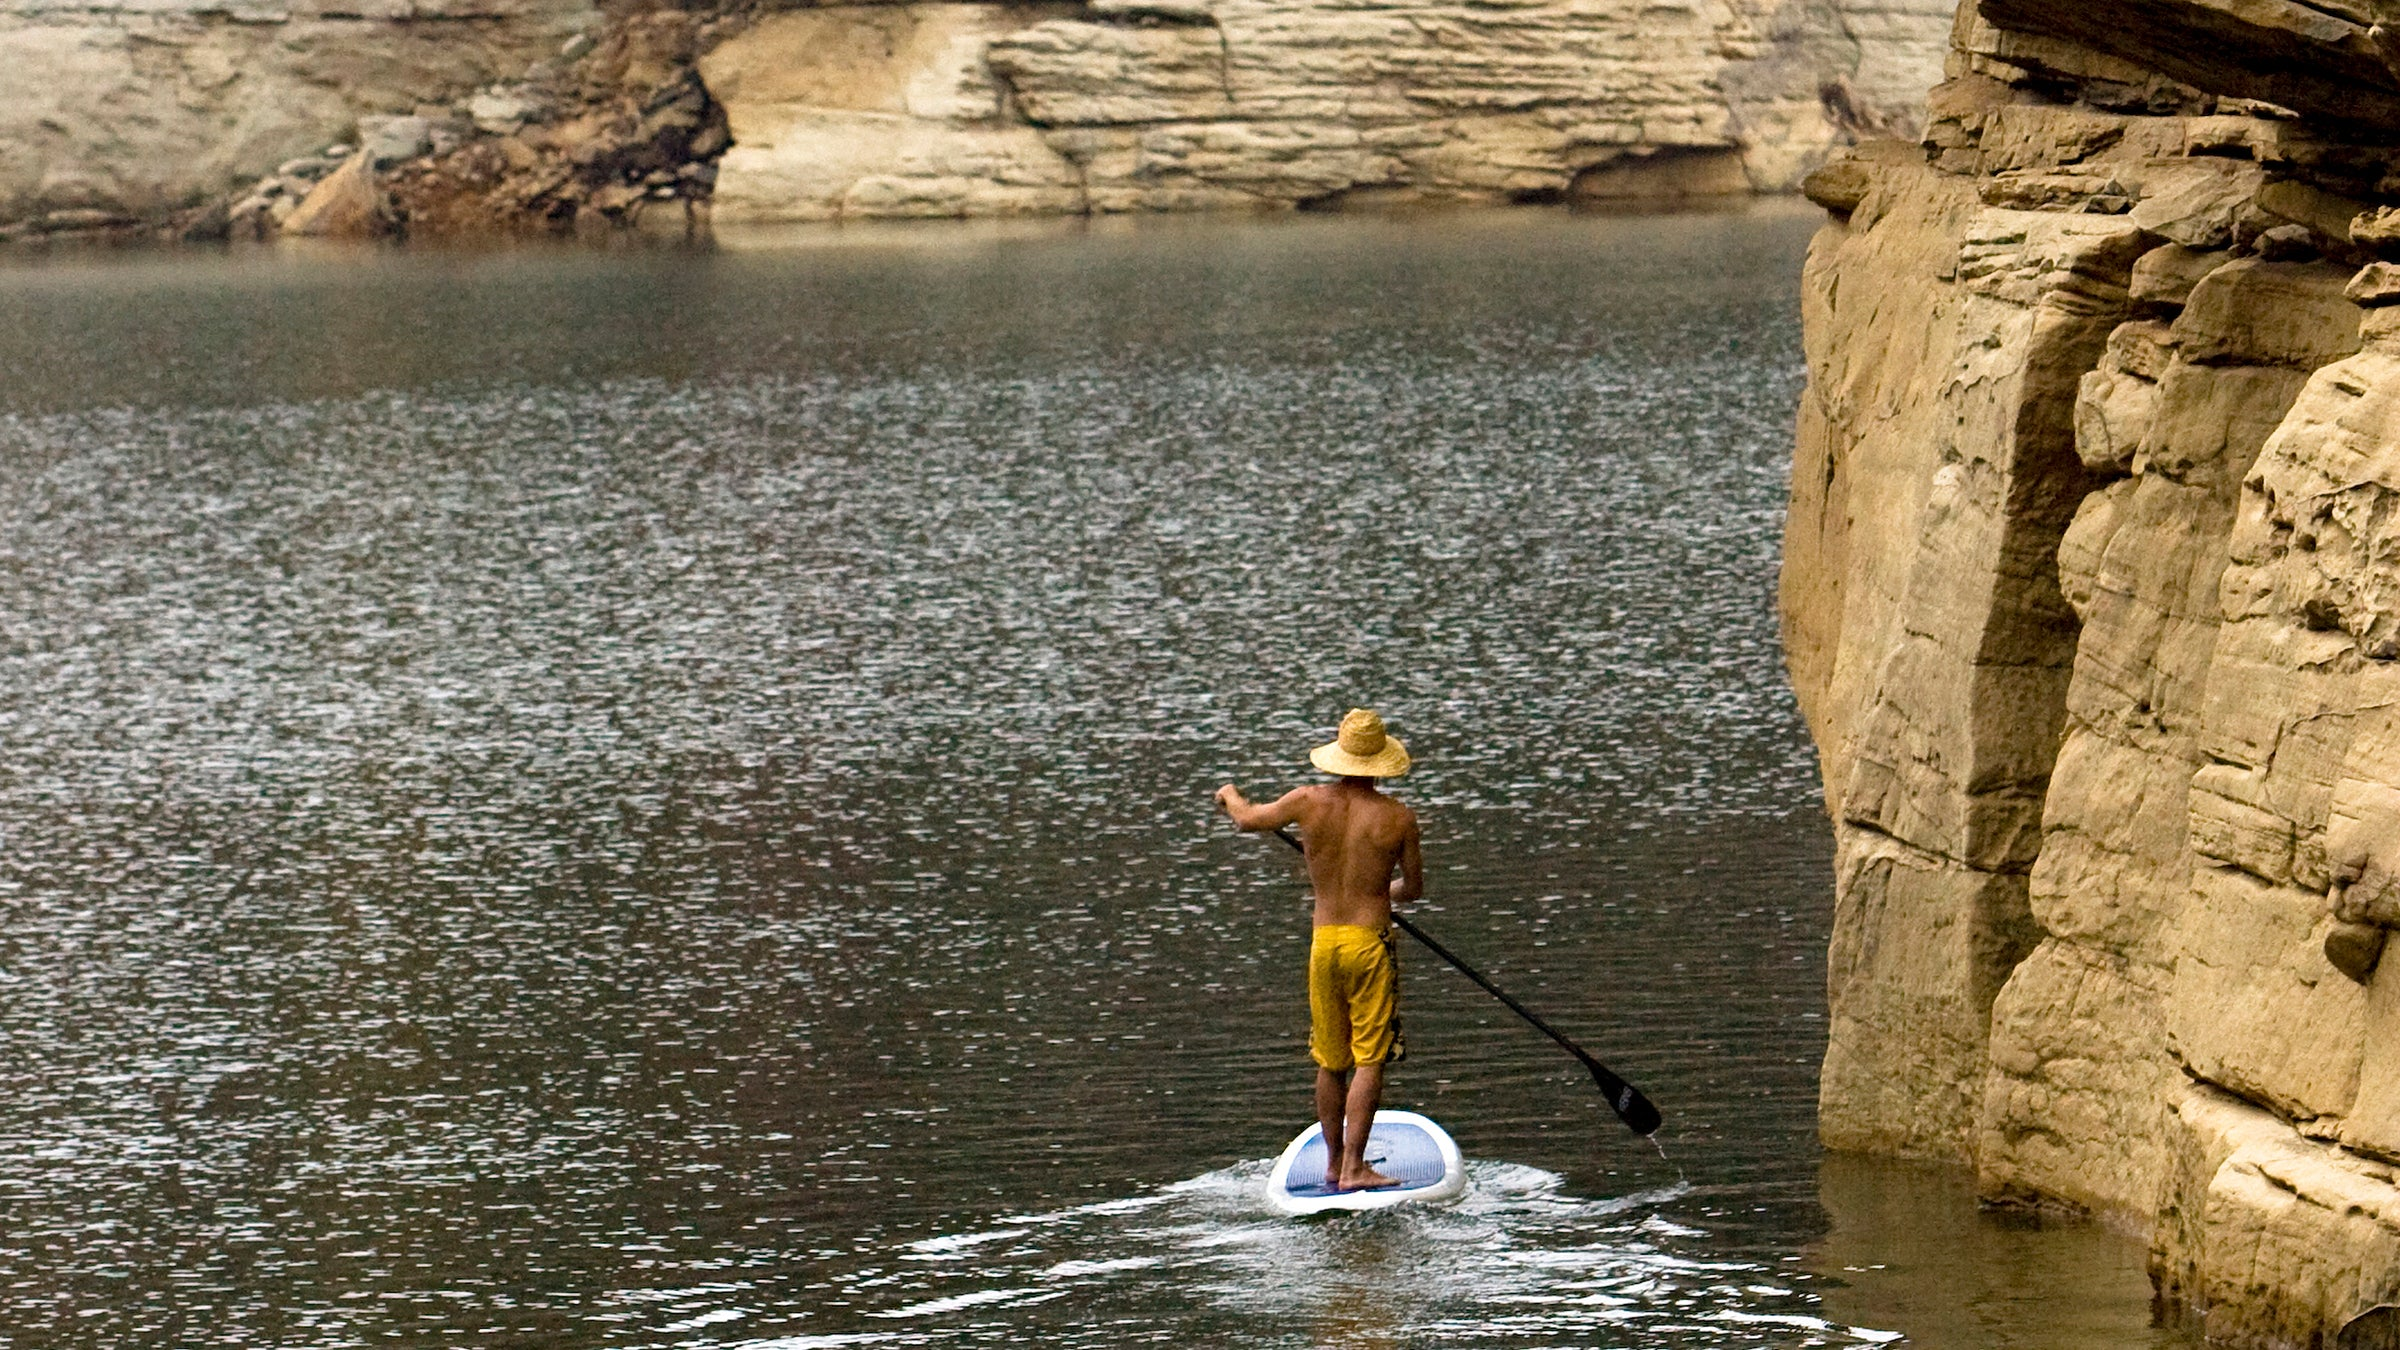 One man stand up paddleboarding on a lake under big cliffs with fall colors.